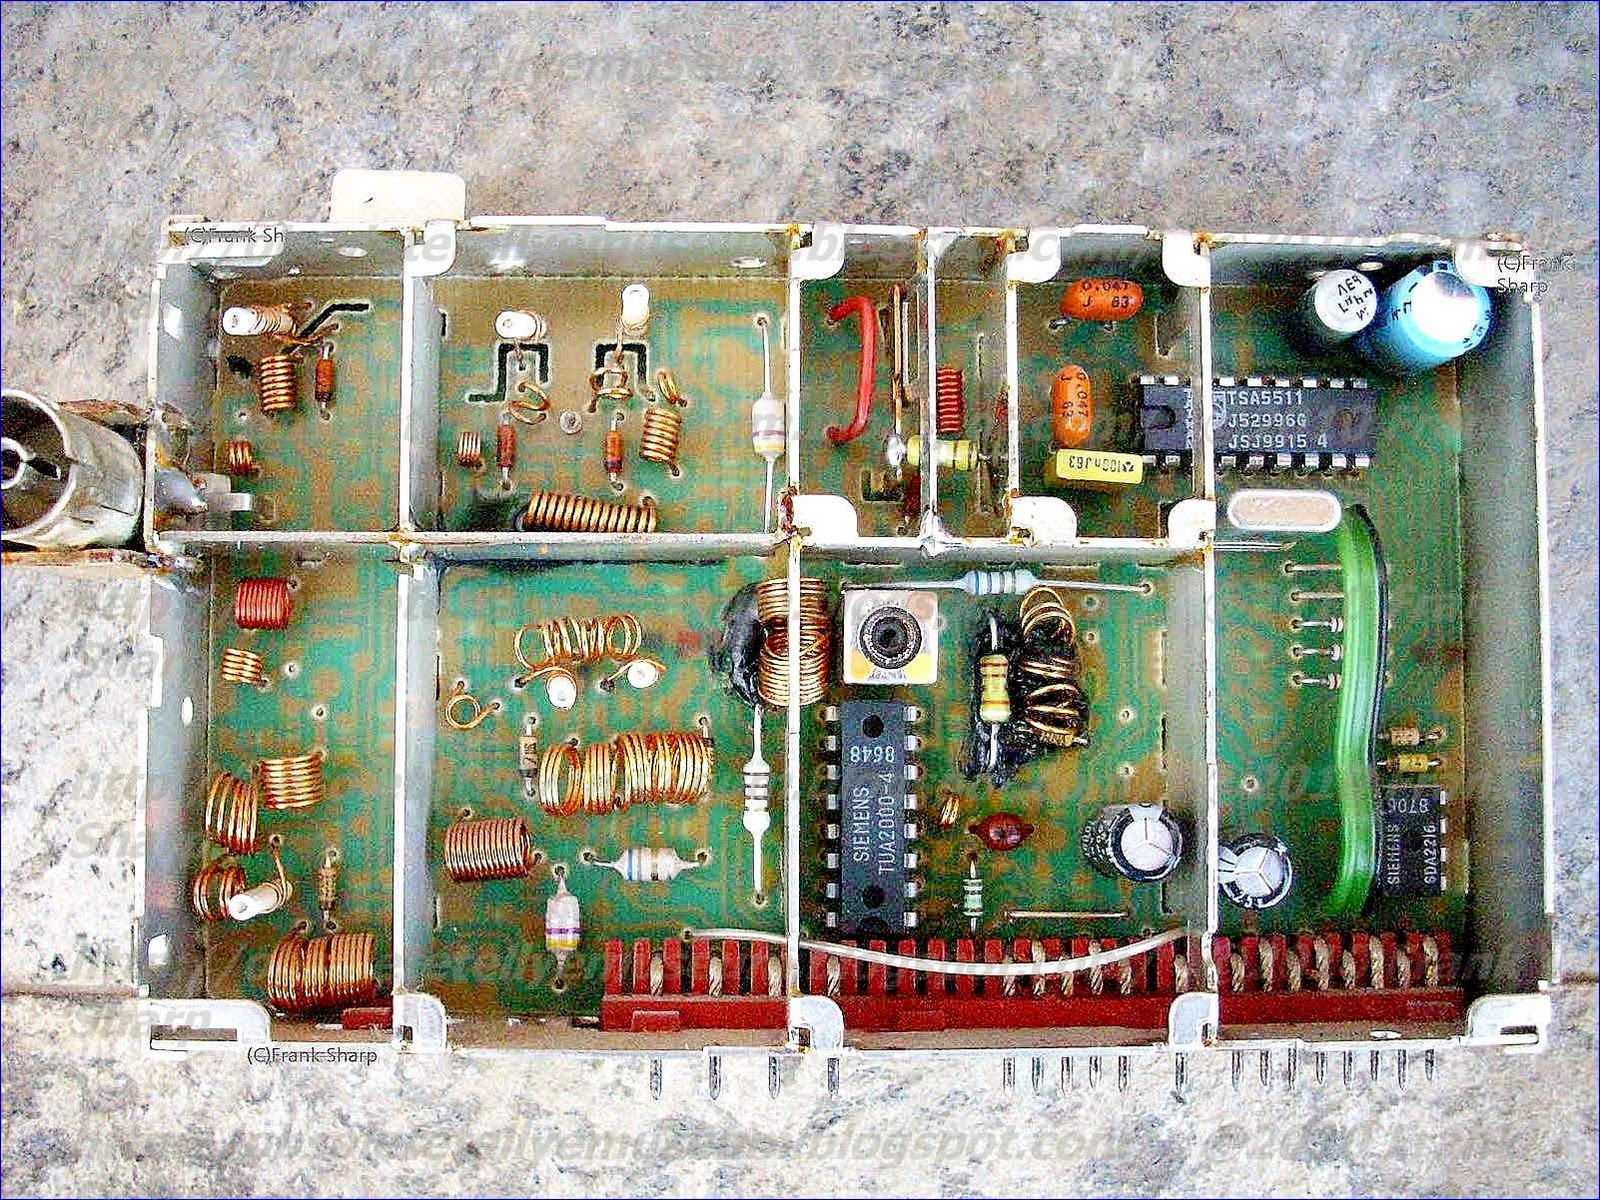 Obsolete Technology Tellye Grundig Super Color T51 340 Gch68 Single Chip Divider Circuit The Tsa5511 Is A Pll Frequency Synthesizer Designed For Tv Tuning Systems Control Data Entered Via I2c Bus Five Serial Bytes Are